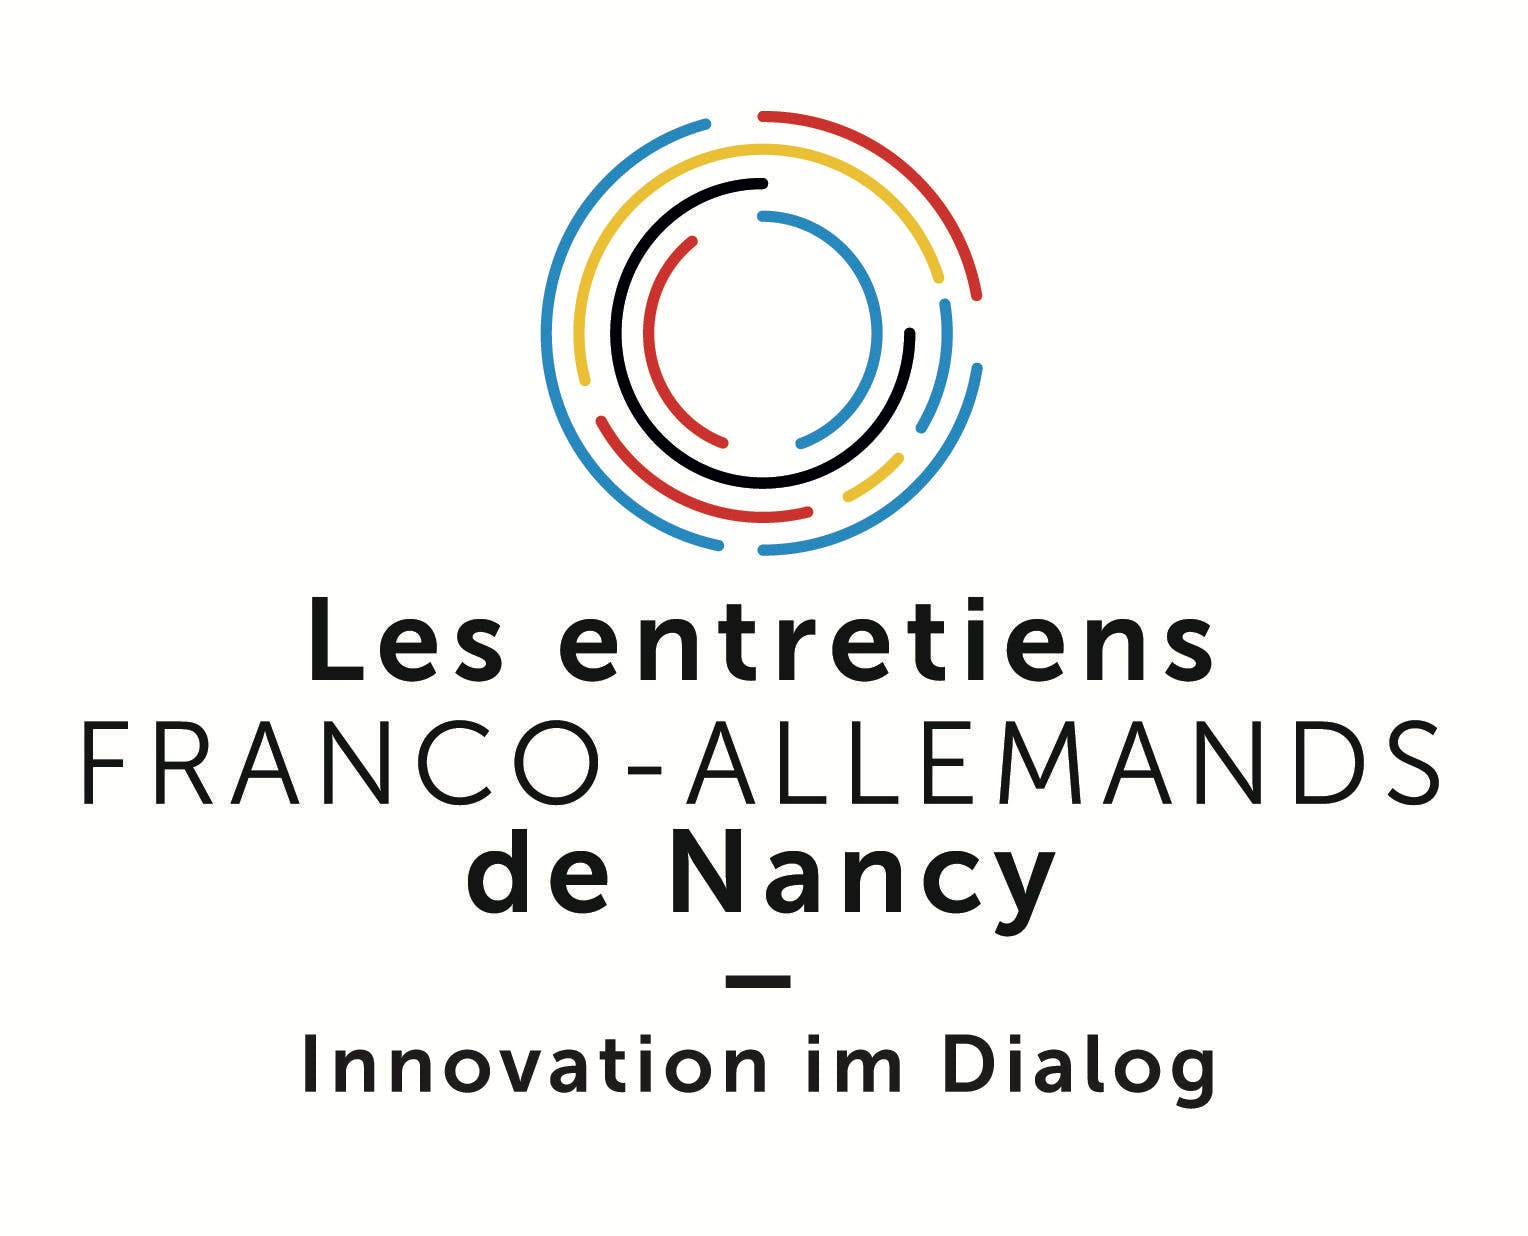 Entretiens franco-allemands de Nancy 2019 - T